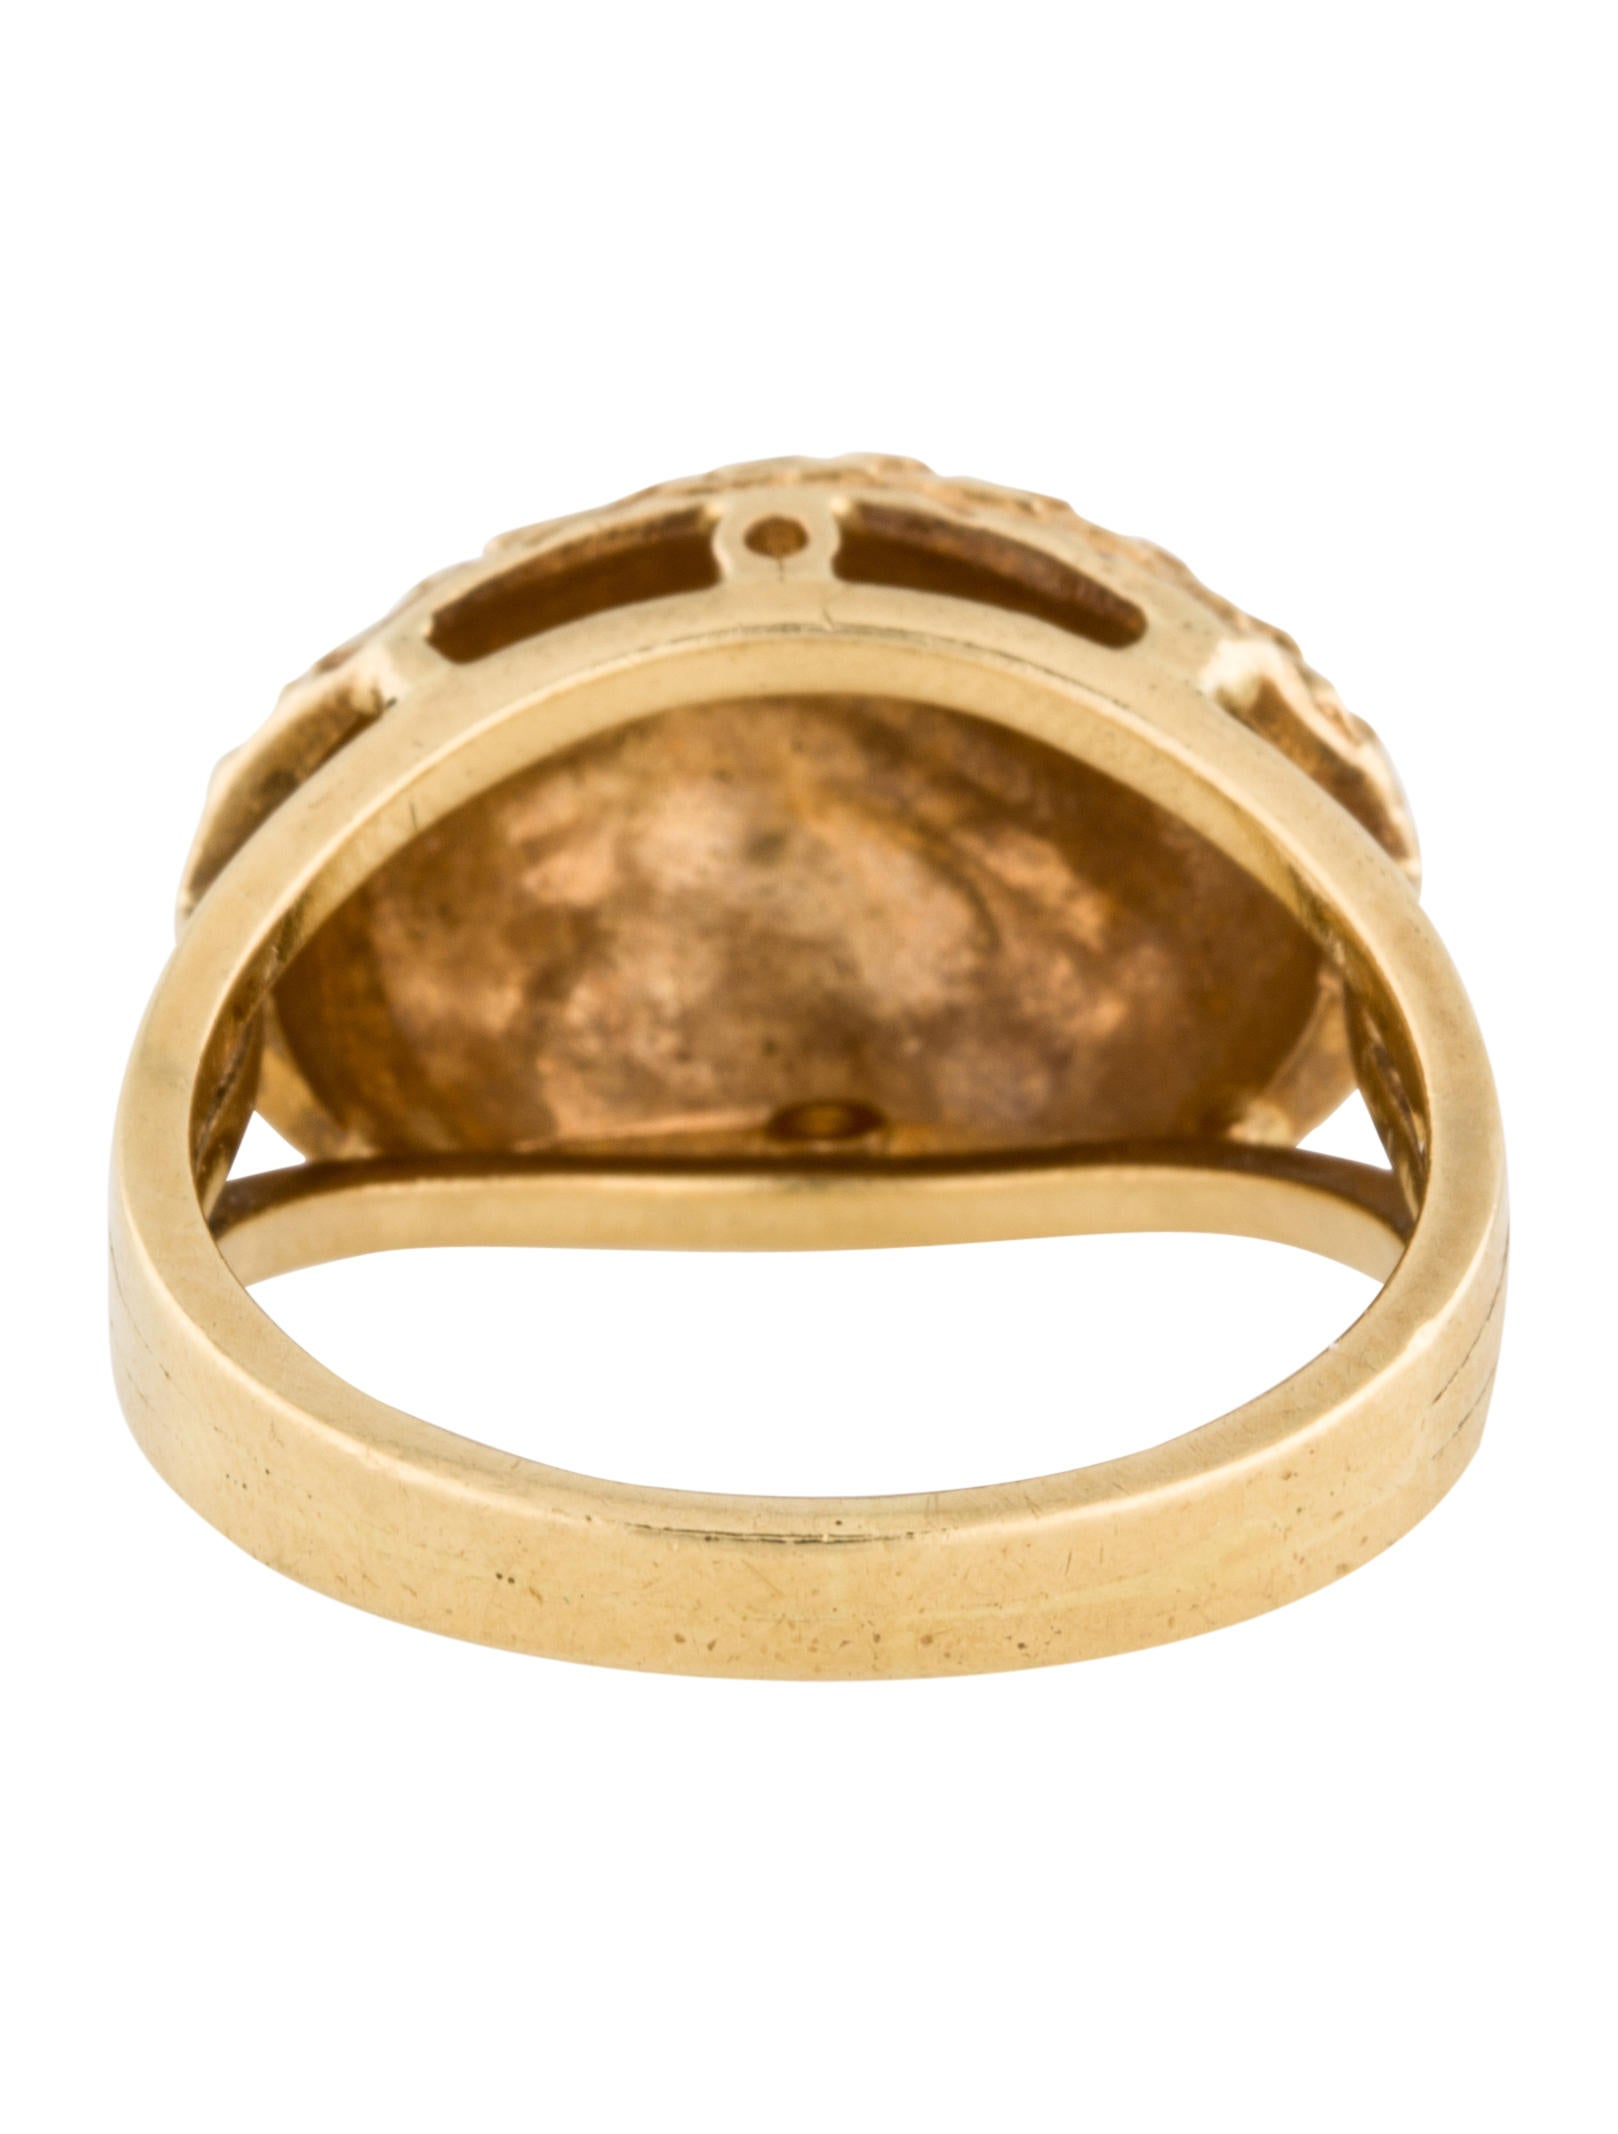 bombe jewelry 18k bombe ring rings fjr27350 the realreal 8599